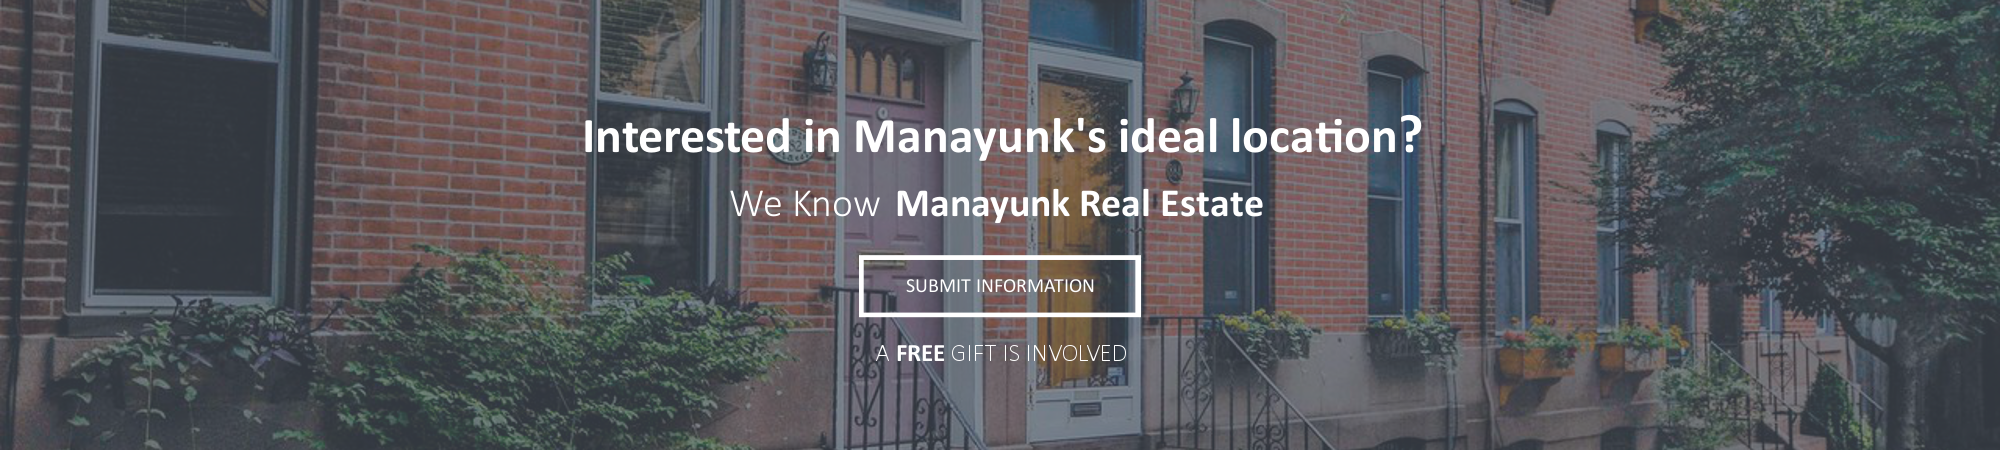 Atlantic States Realty - Manayunk Real Estate